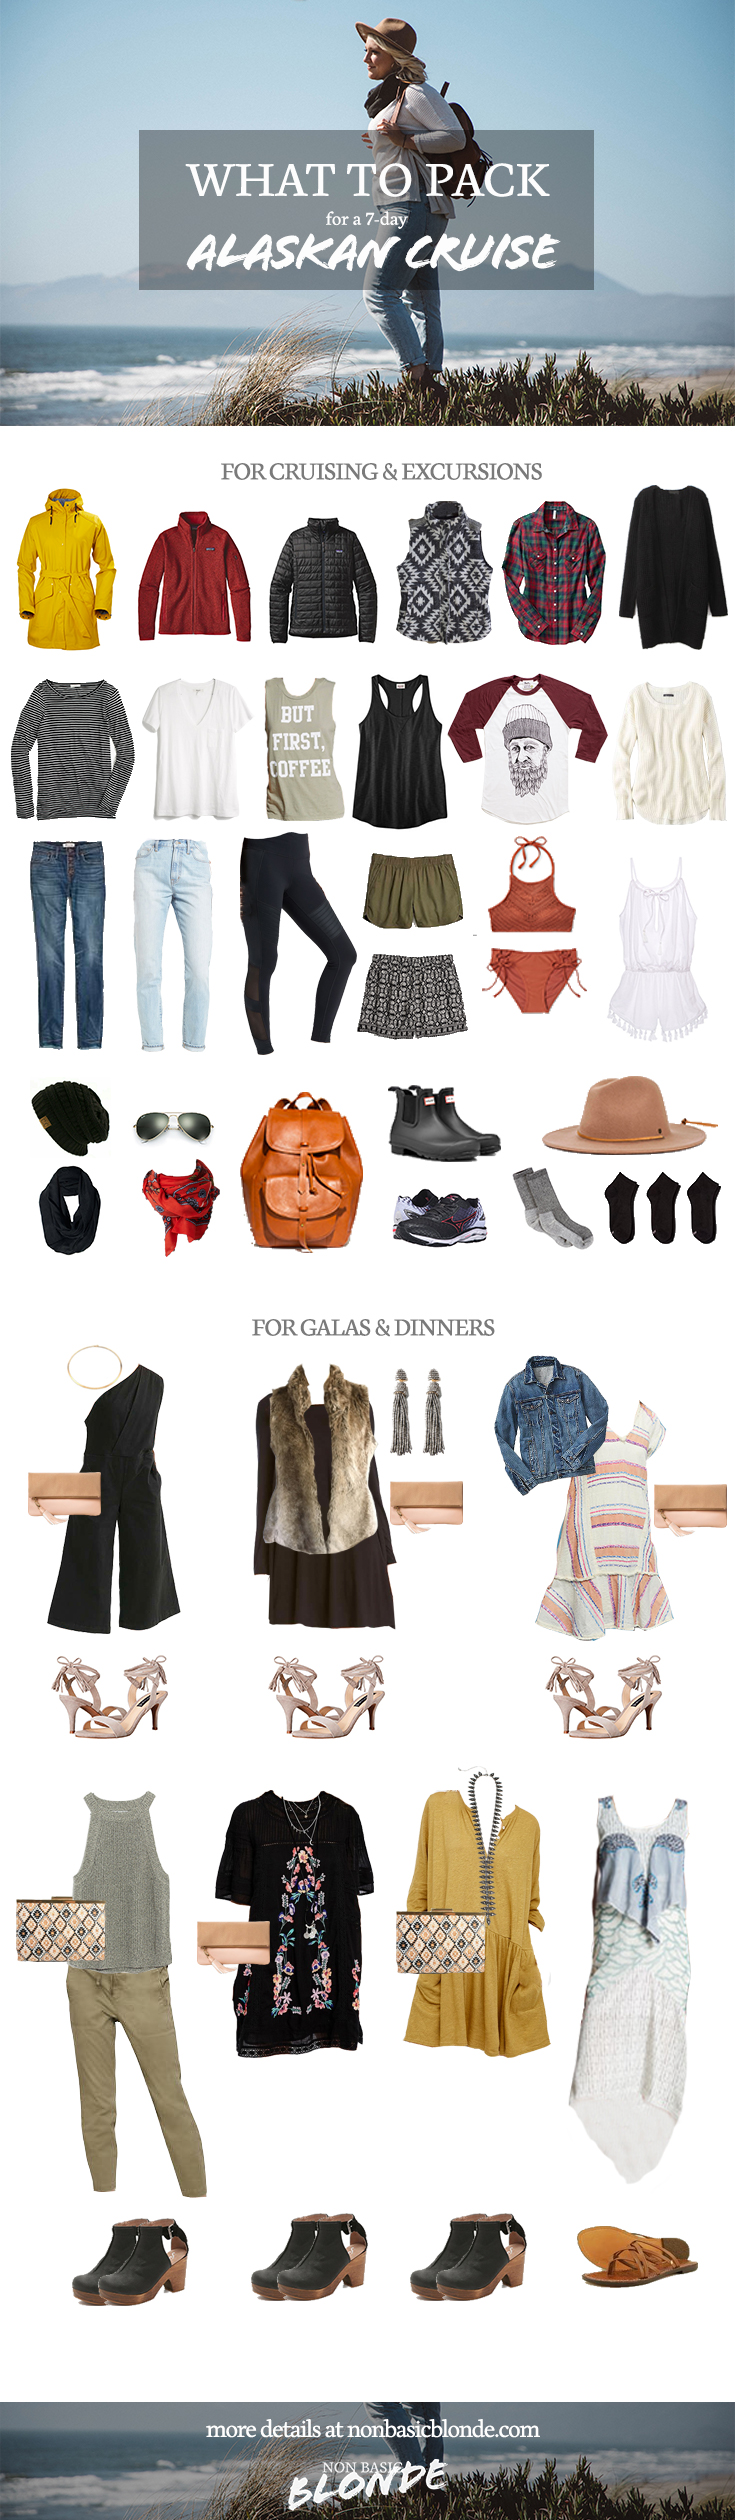 alaska cruise packing list outfits